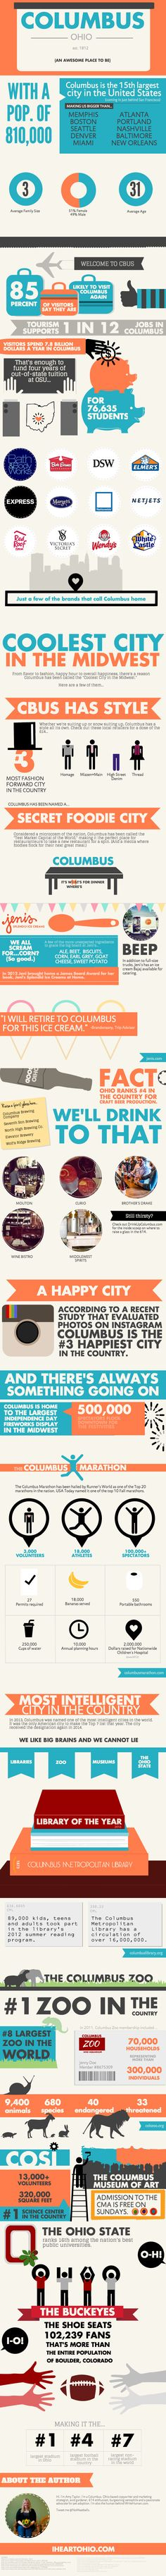 Columbus, Ohio - An awesome place to be